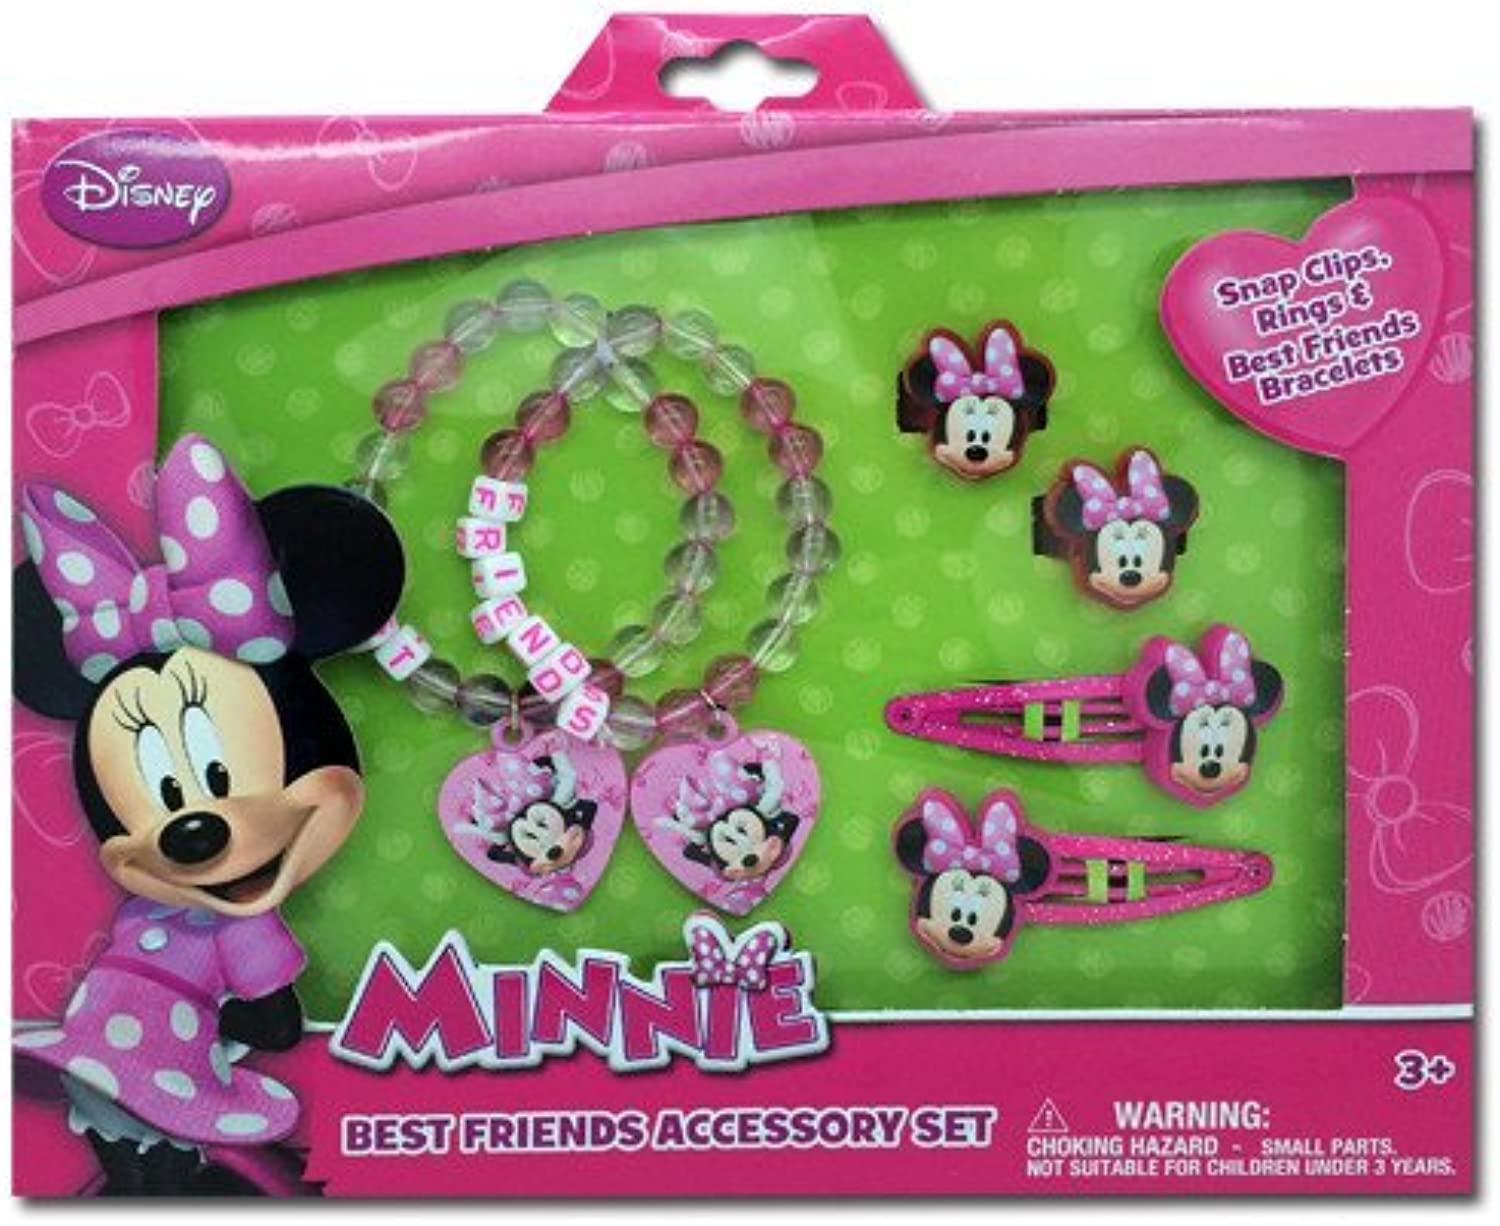 Minnie Mouse Box Set with Snap Clips, Beaded Charms Bracelets, & Rings by Minnie Mouse